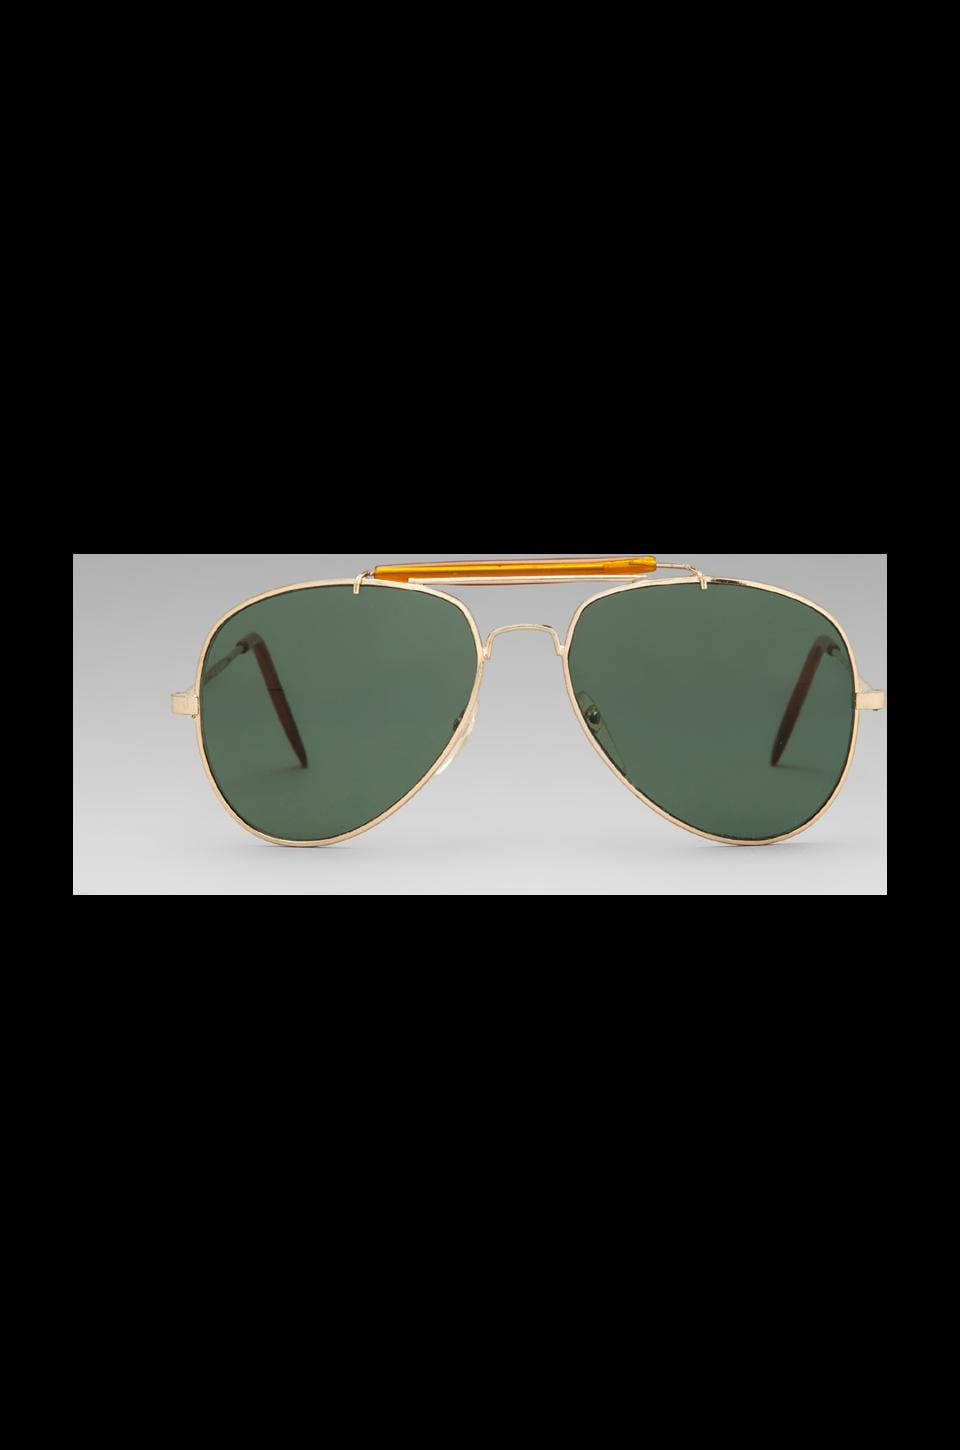 Peekabooda Easy Rider Aviators with Green Lens in Gold